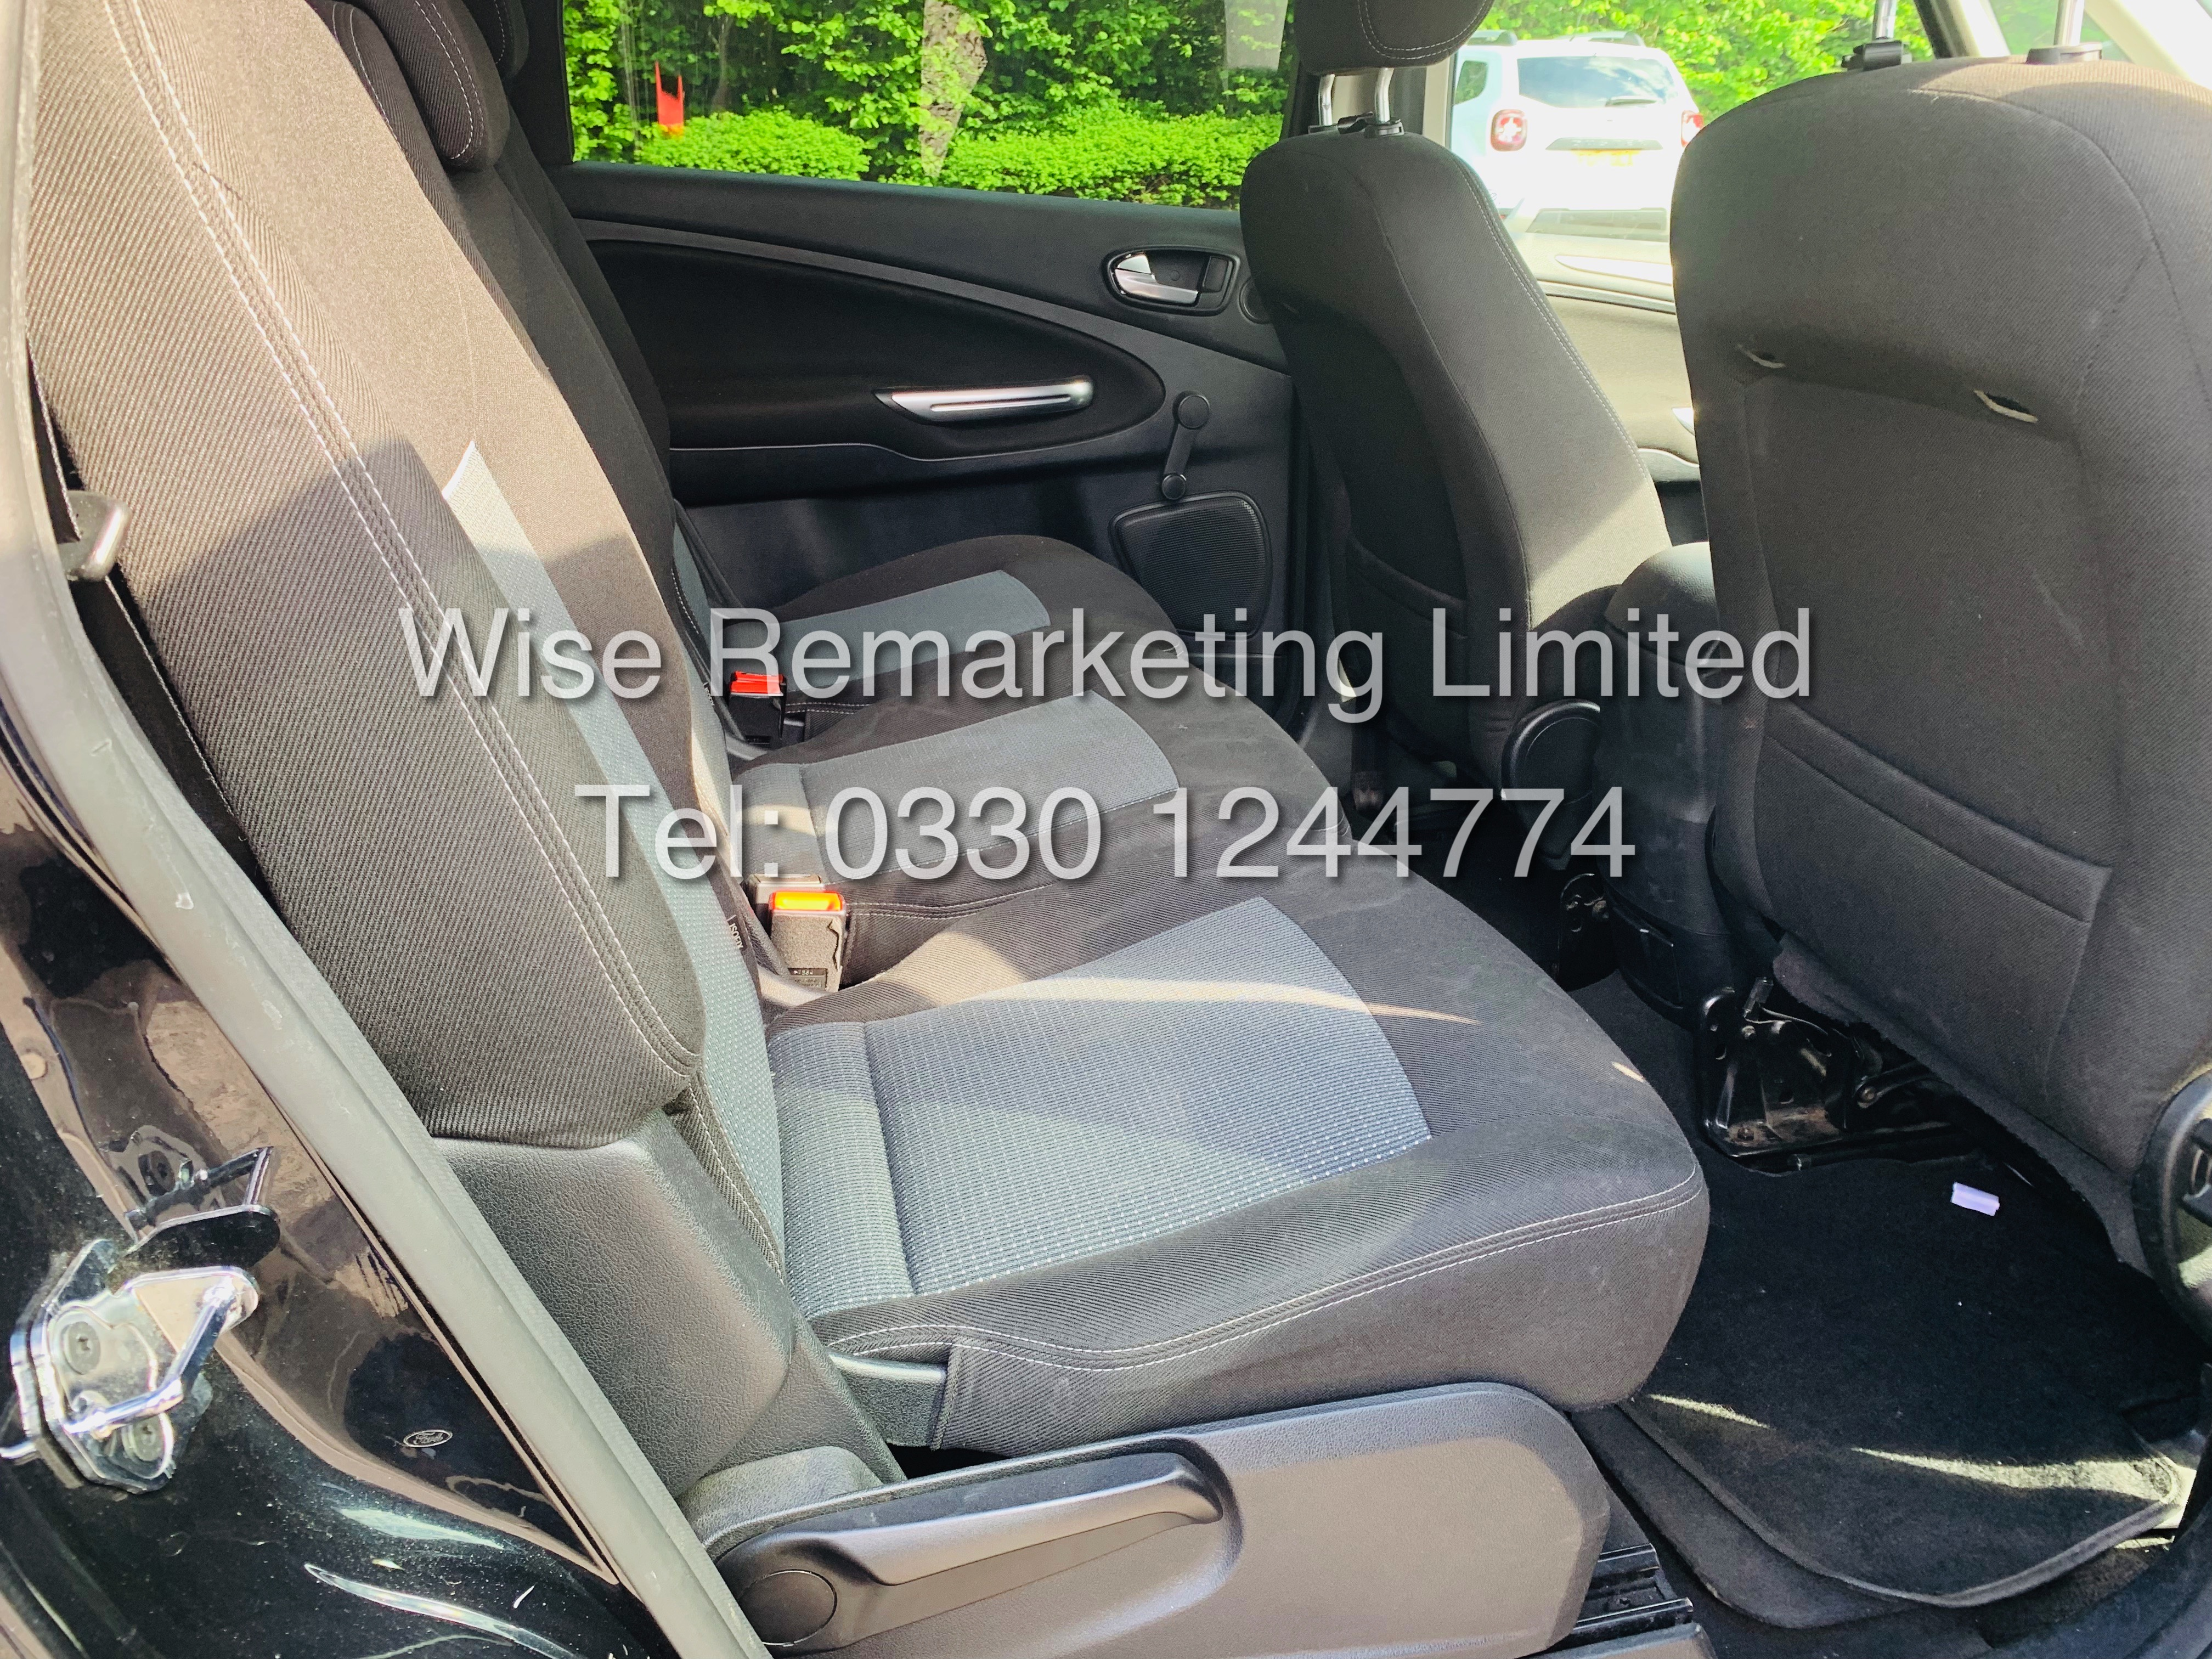 FORD GALAXY ZETEC 2.0L TDCI AUTO 7 SEATER MPV 63 REG *1 OWNER* - Image 9 of 18